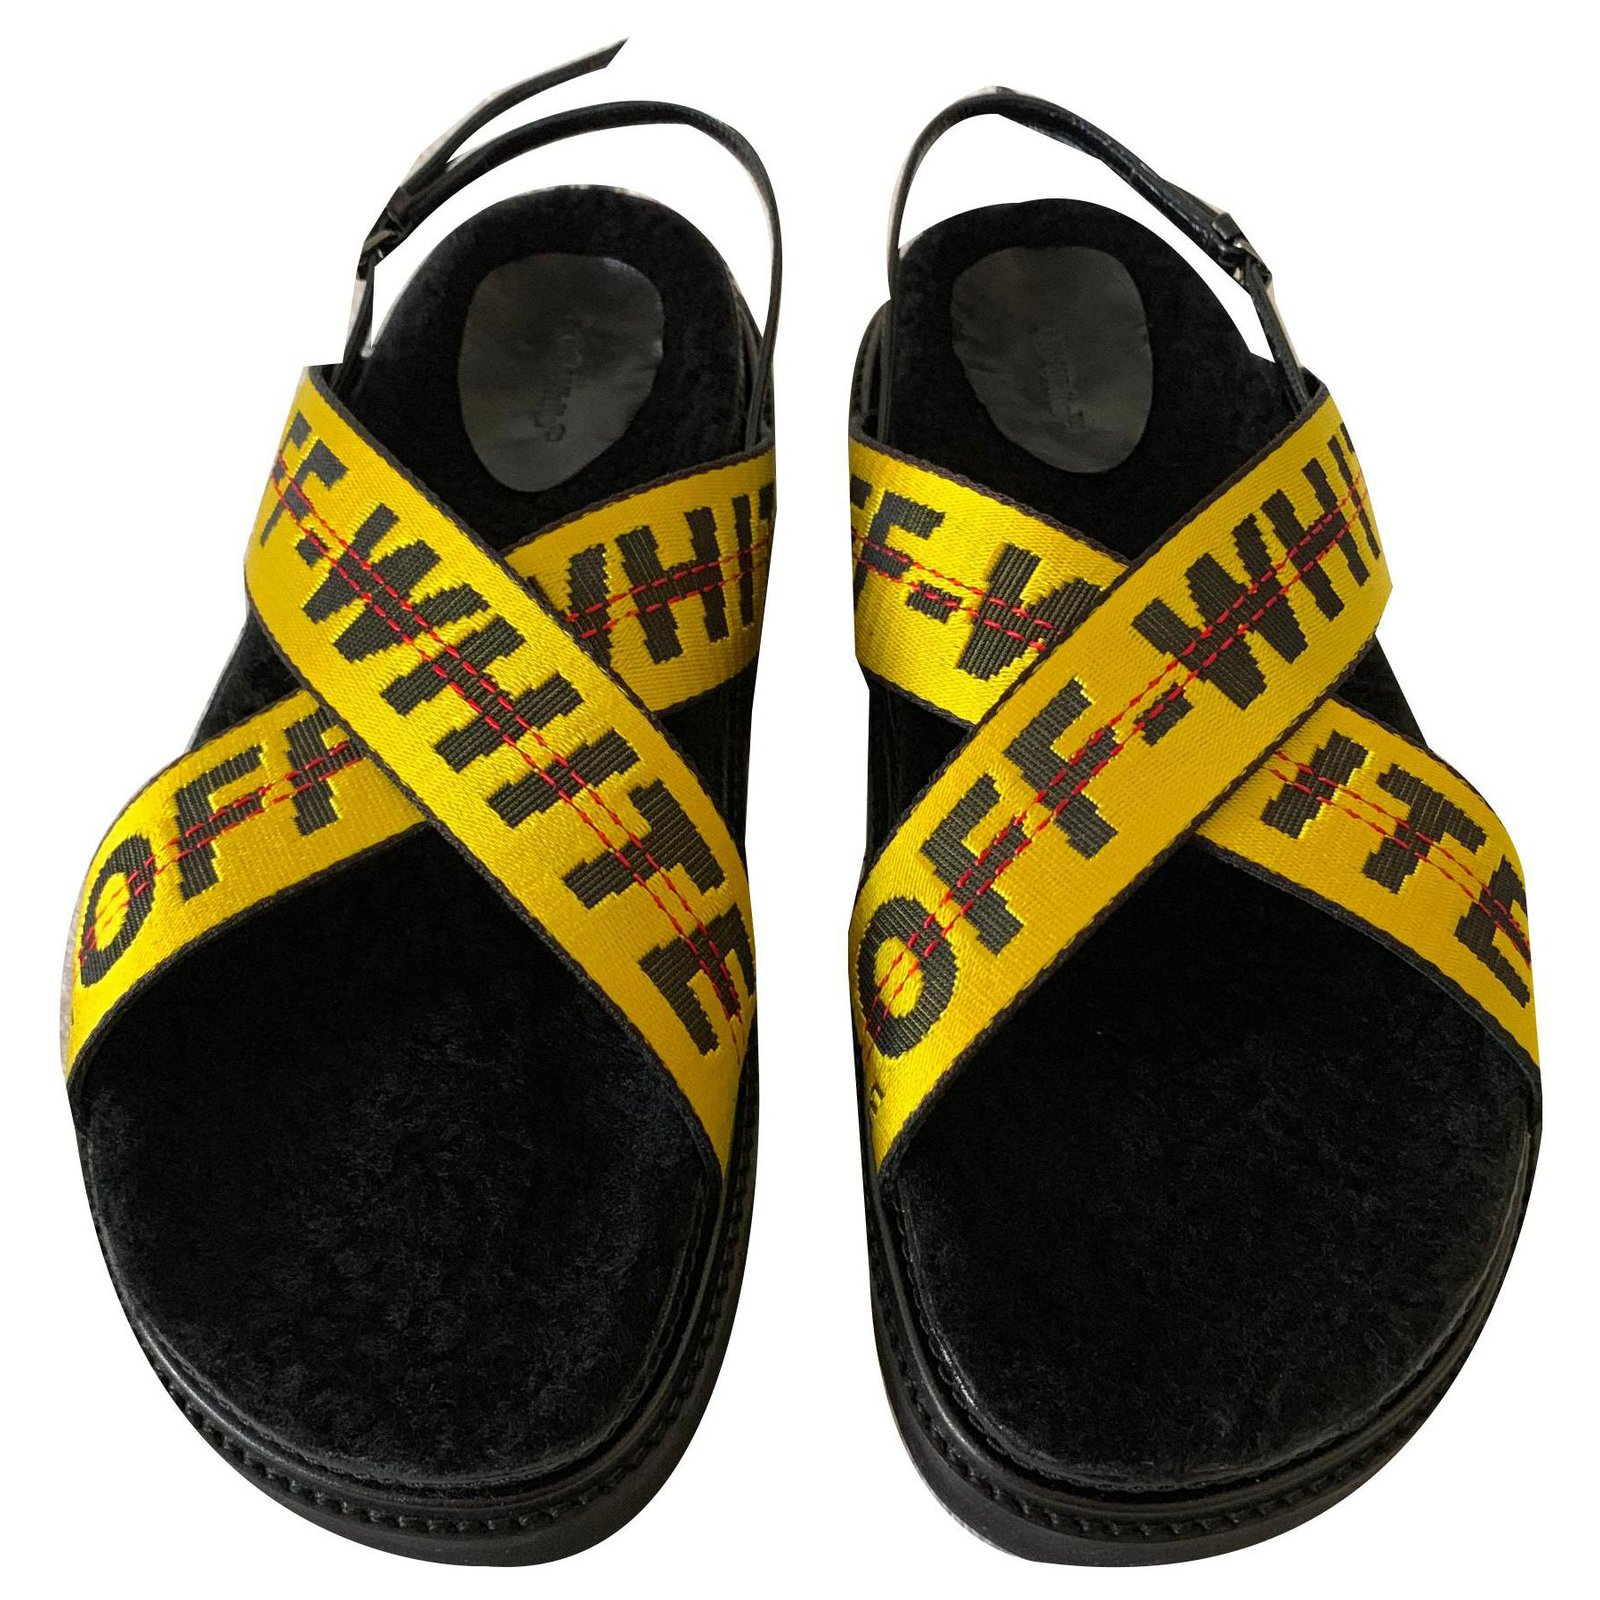 Off White Leather and fur sandals